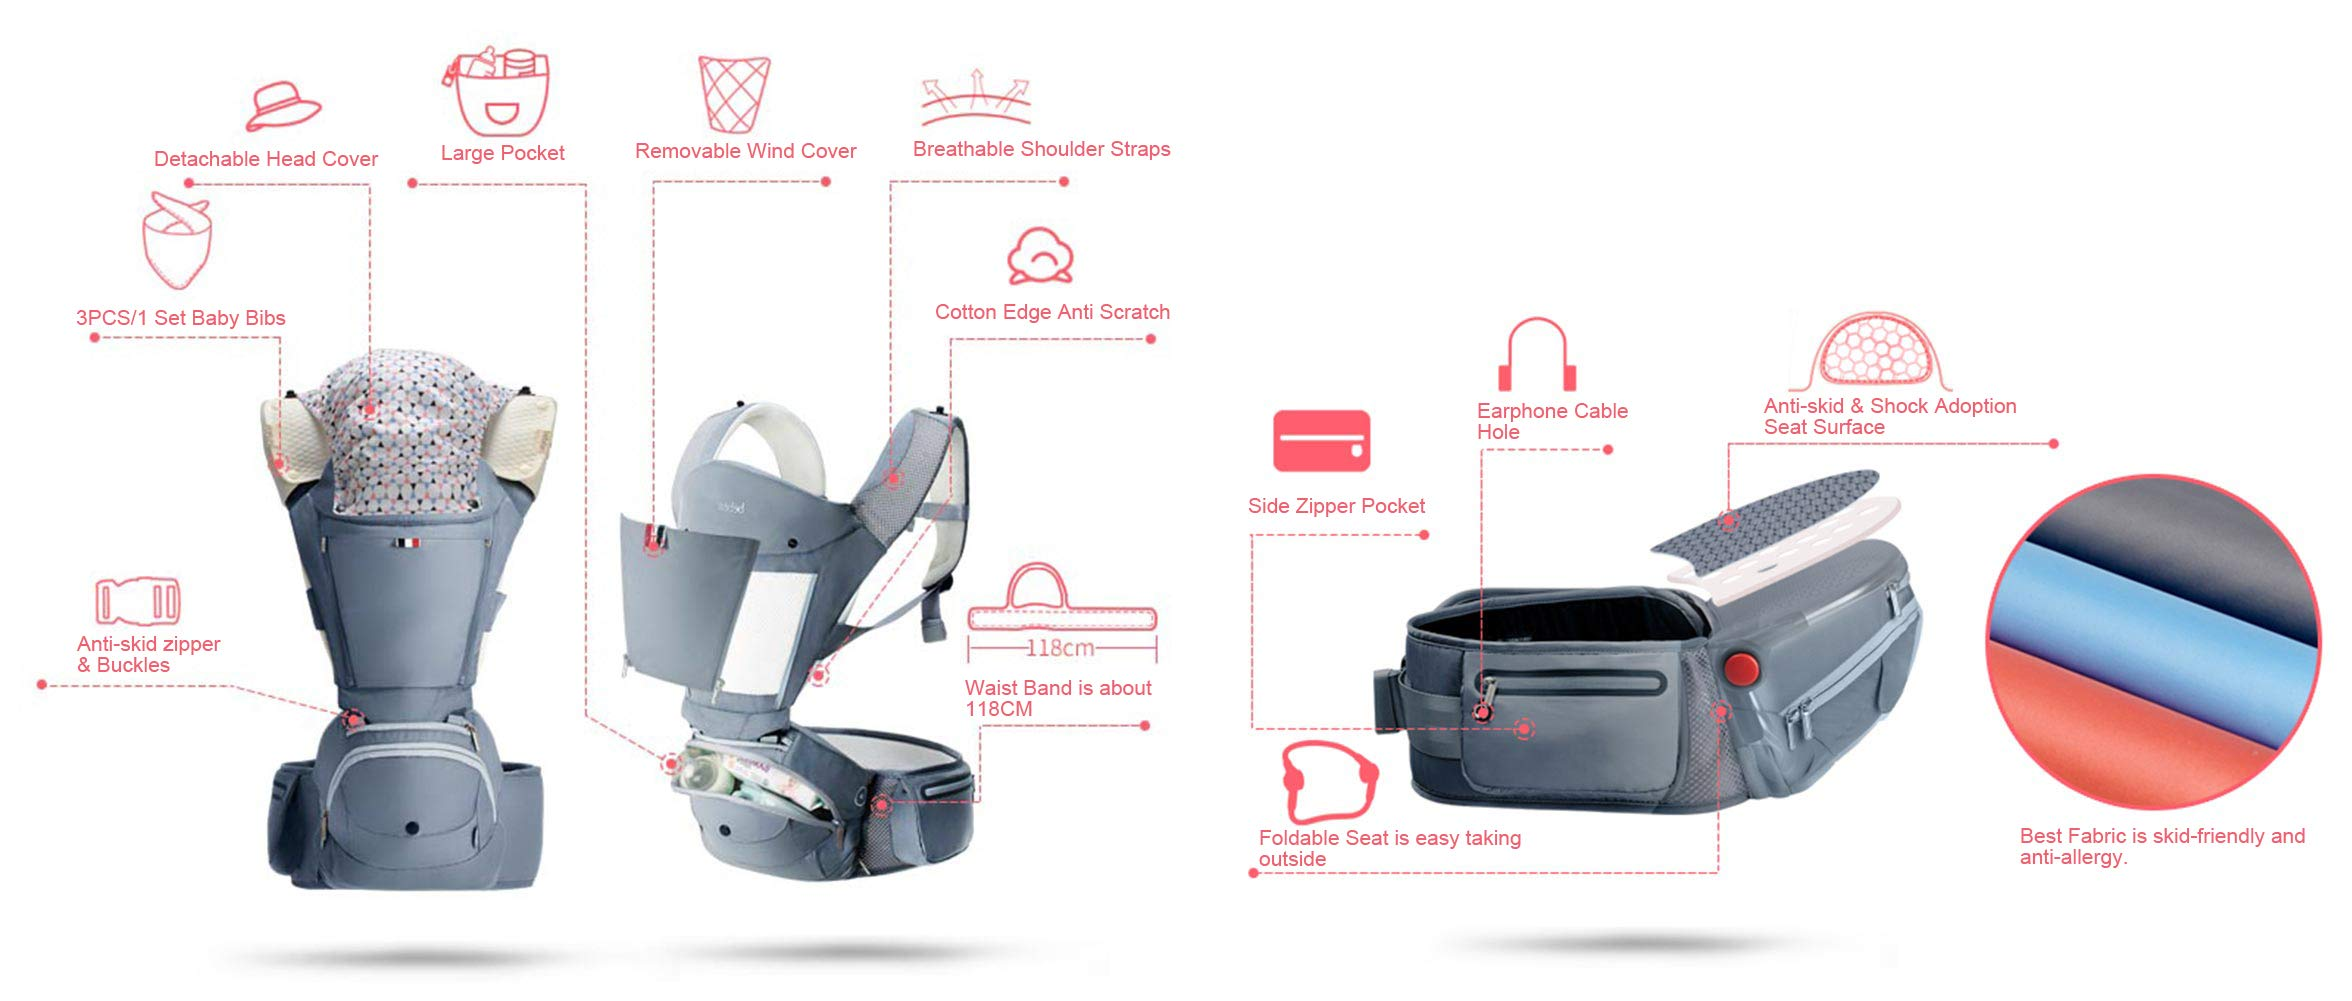 """Bebamour Baby Carrier Hip Seat 6 in 1 Clasical Baby Carrier Backpack 0-36 Months with 3PCS Baby Drool Bibs, Convertible Baby Carrier (Noble Grey) bebear SPORTY CHIC - The baby carrier is used soft classical cotton with polyester touching. The breathable effective is more than 76% which is better than ordinary cotton. Baby will feel best comfort and soft in it. C+M DESIGNED - Ergonomic baby carrier is all parents' pursue. The hip seat is designed according to baby's develoment. Size: L9.8""""*H11.8""""*W7""""(L25*H30*W18CM); Weight is about 1.82 lbs(0.83KG). The upper part can be detached to be a single seat. You can put baby in 3 ways, horizontal, face-forward and face-inward. GOLDEN RATIO - Best comfort for baby who is from 0-36months and whose weight is about 0-33 lbs (0-14.9KG). Baby can be carried in another 3 ways by face-forward, face-inward and backpack position. 4"""